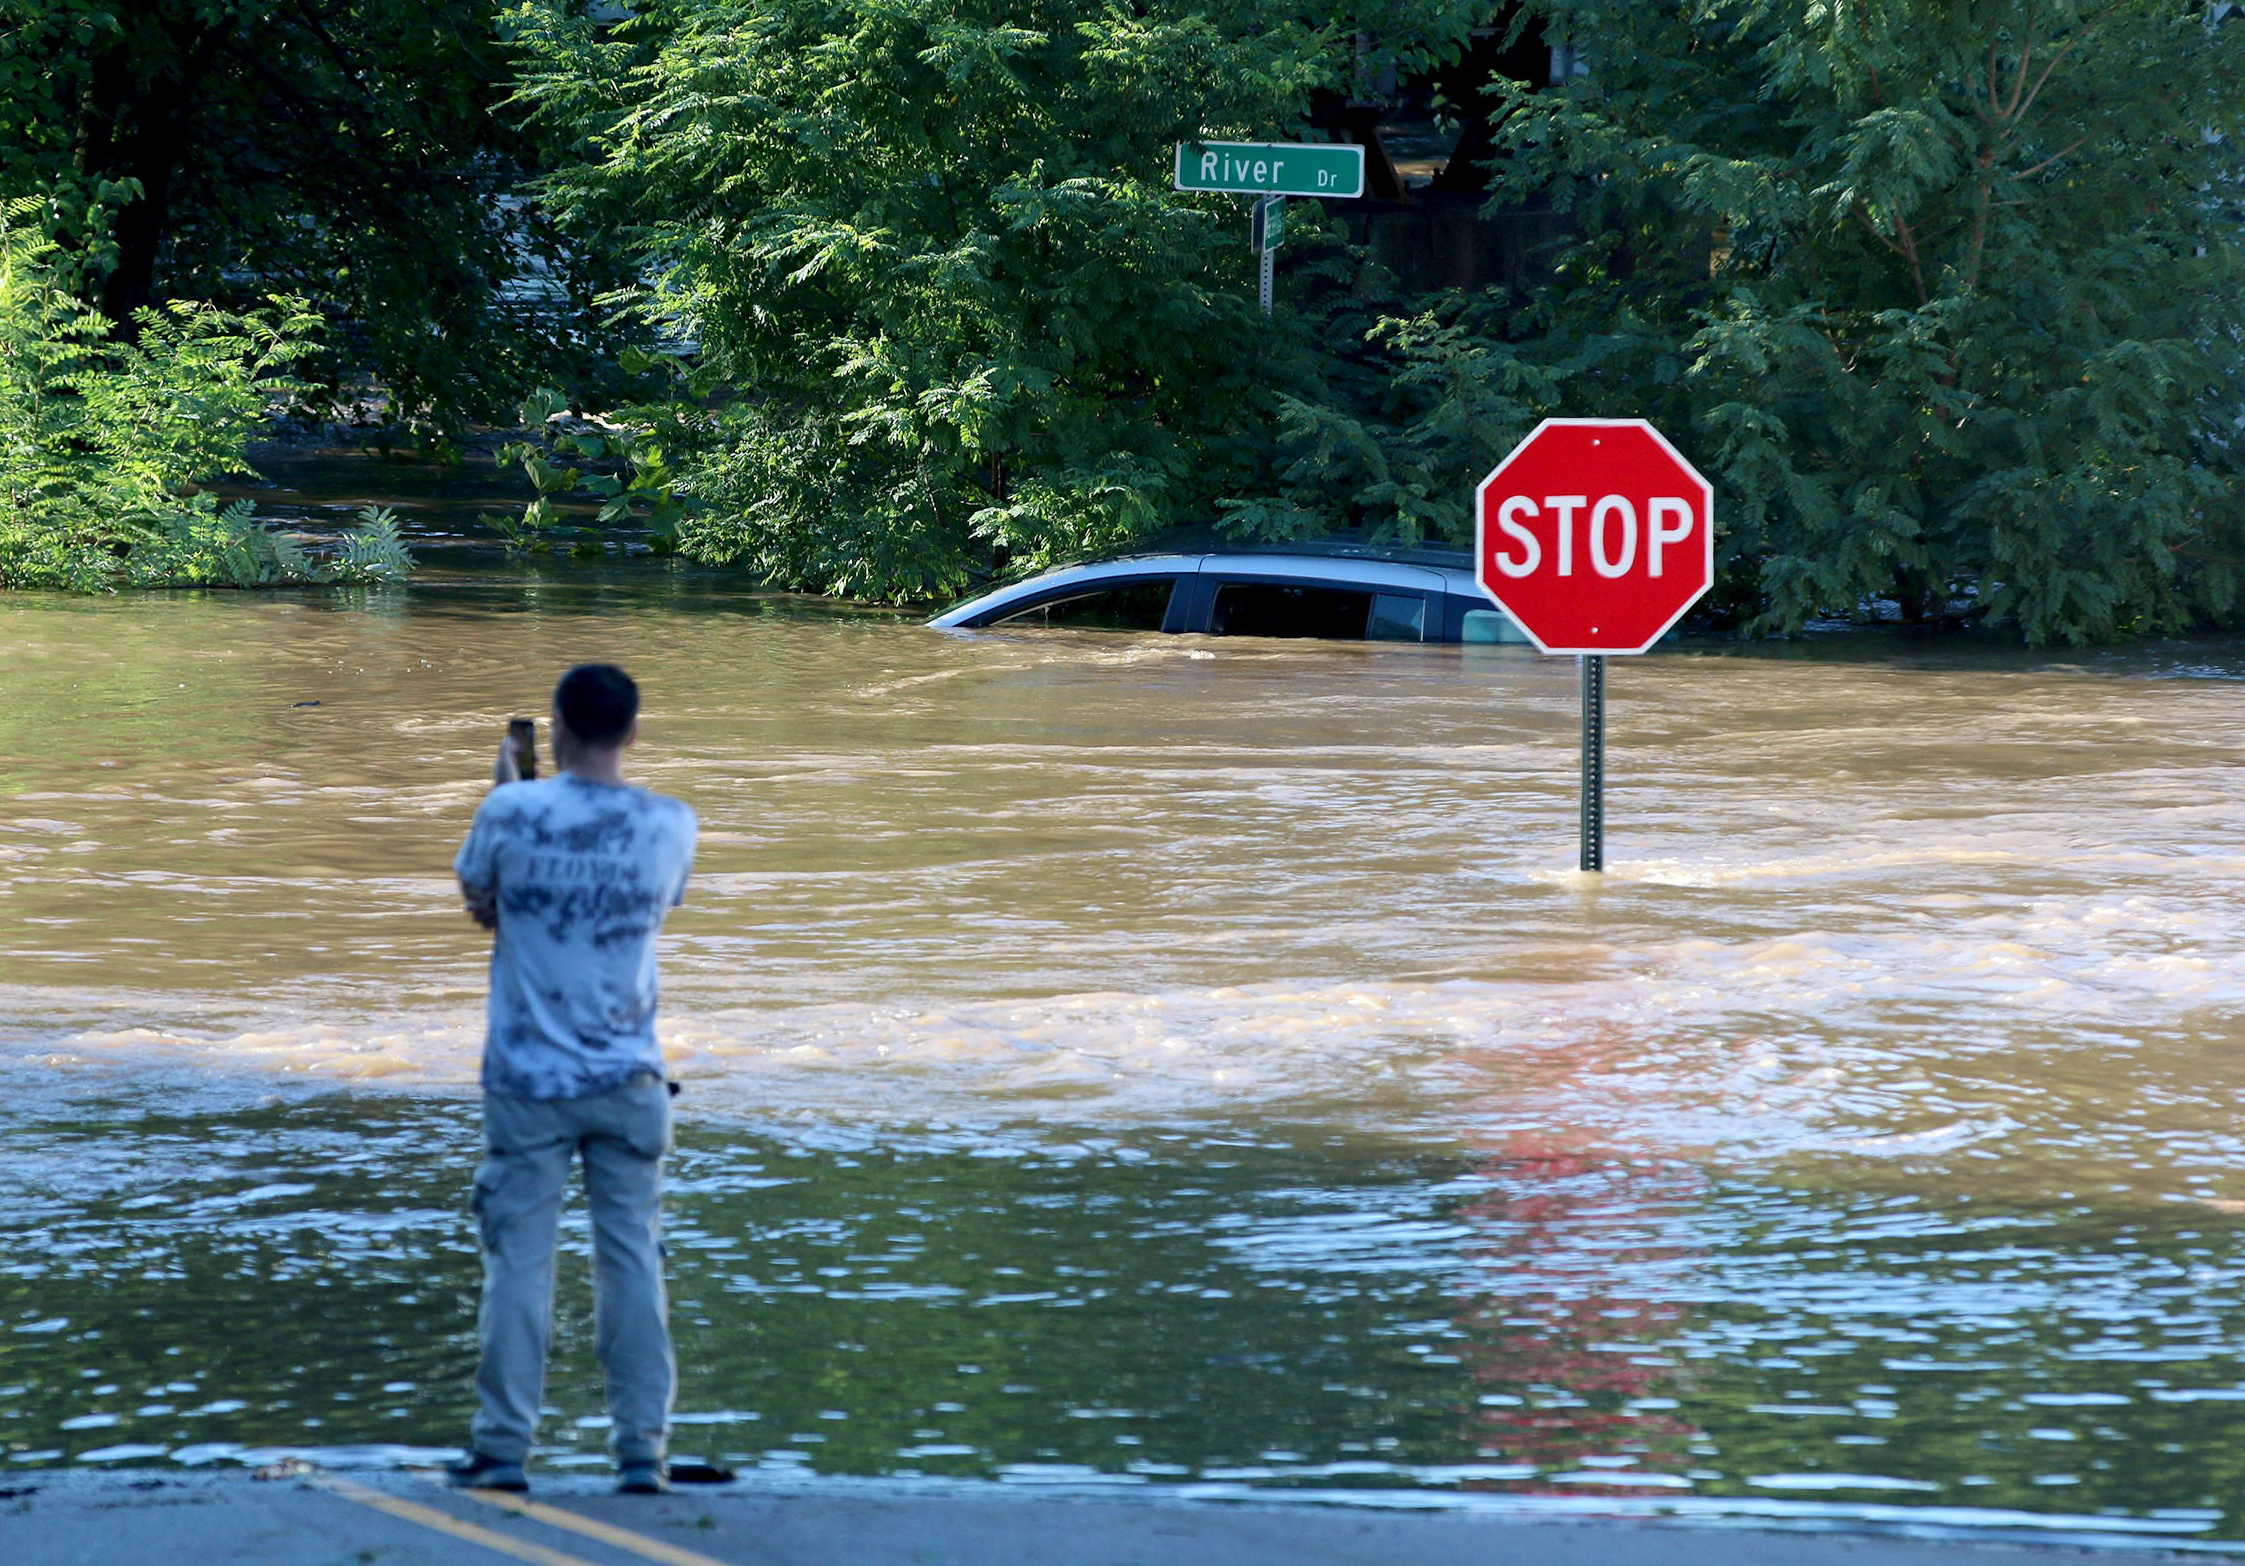 A man takes photos of a submerged car as the remnants of Hurricane Ida brought torrential rains and flooding to the area in Passaic, New Jersey, September 2. Thomas P. Costello/USA TODAY Network via REUTERS